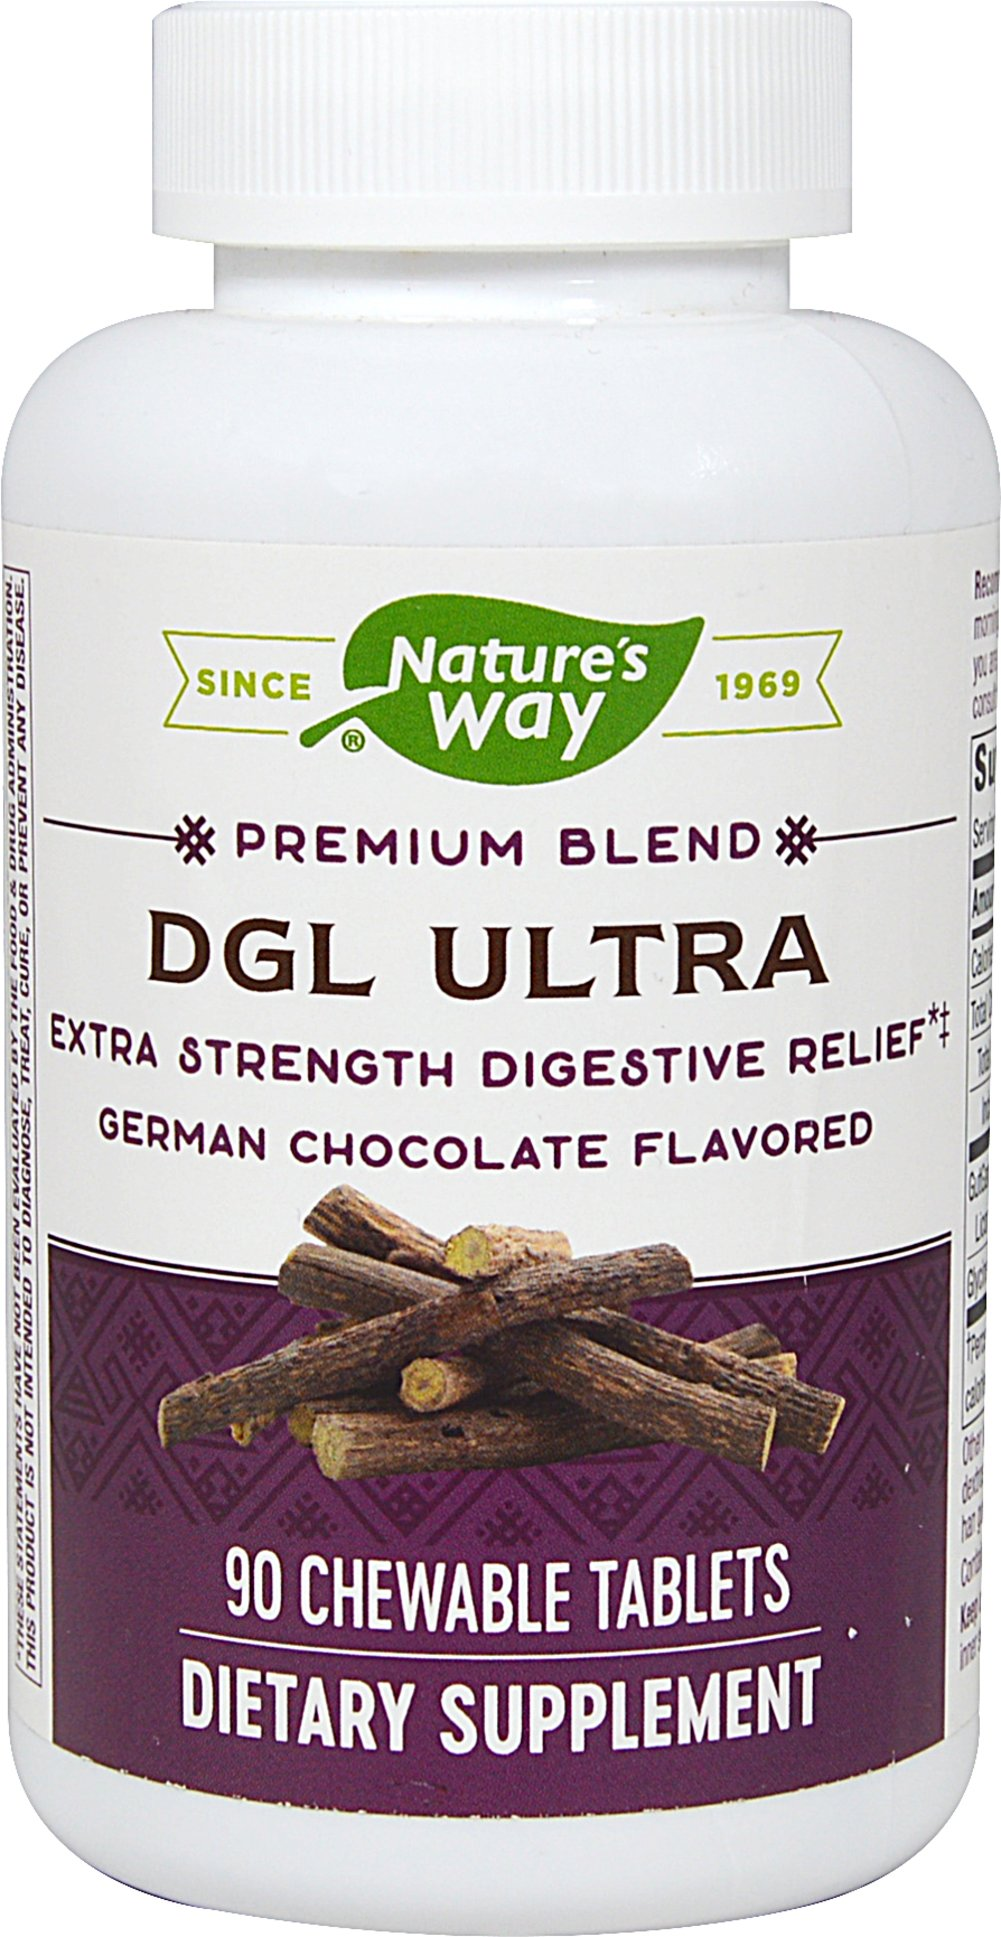 DGL Ultra German Chocolate Chewable